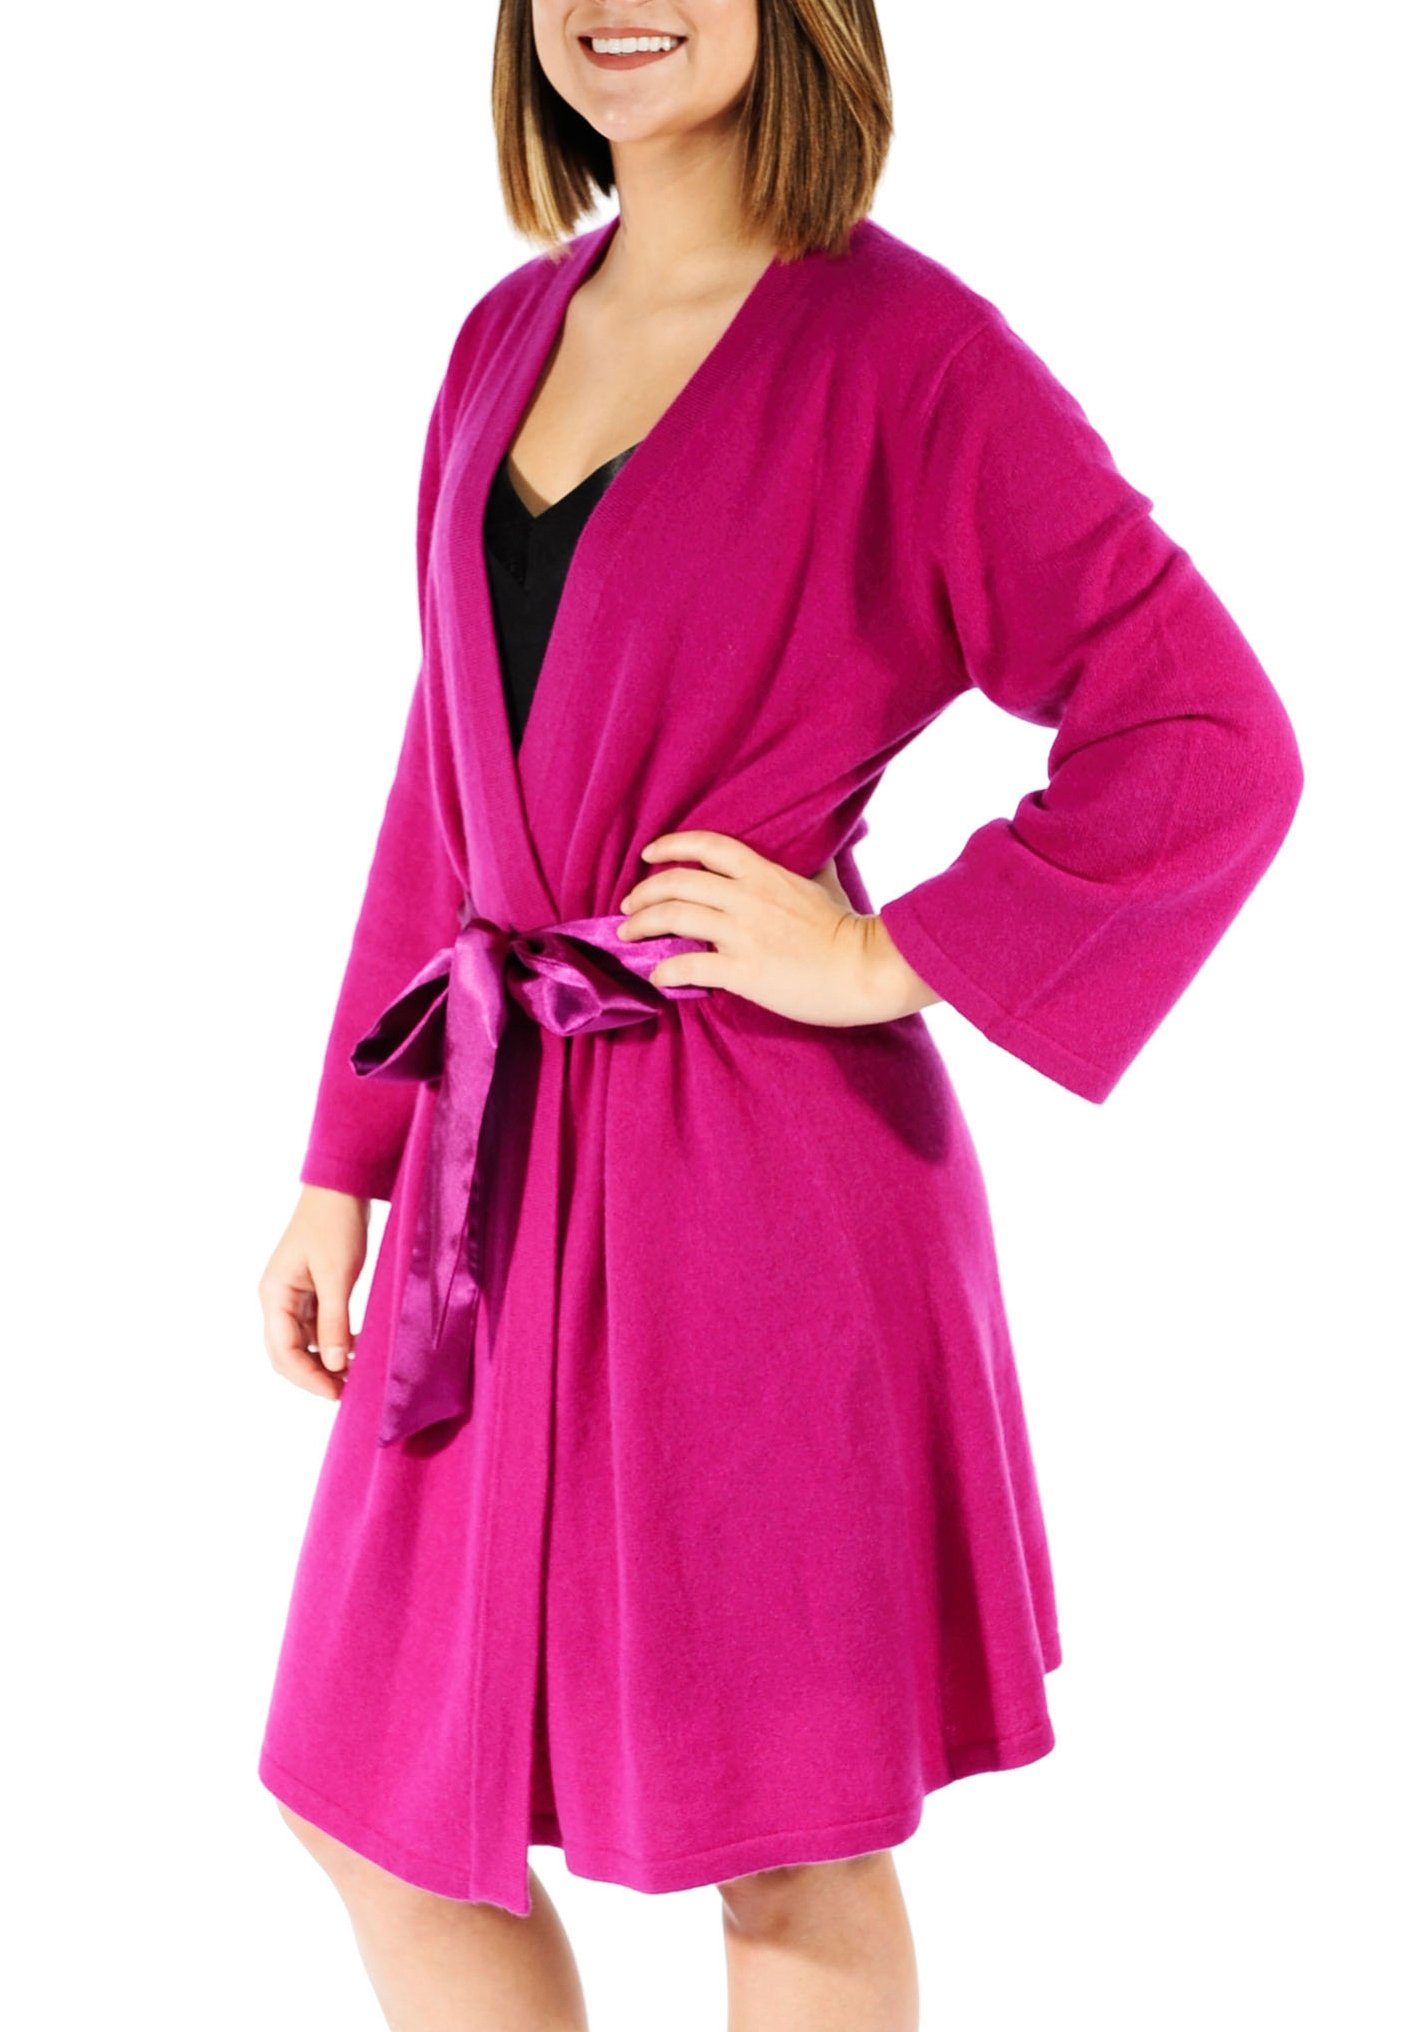 Gigi Reaume 100% Cashmere Women's Robe, Wrap Style, Satin Belt, Short Length (Small, Magenta Pink)